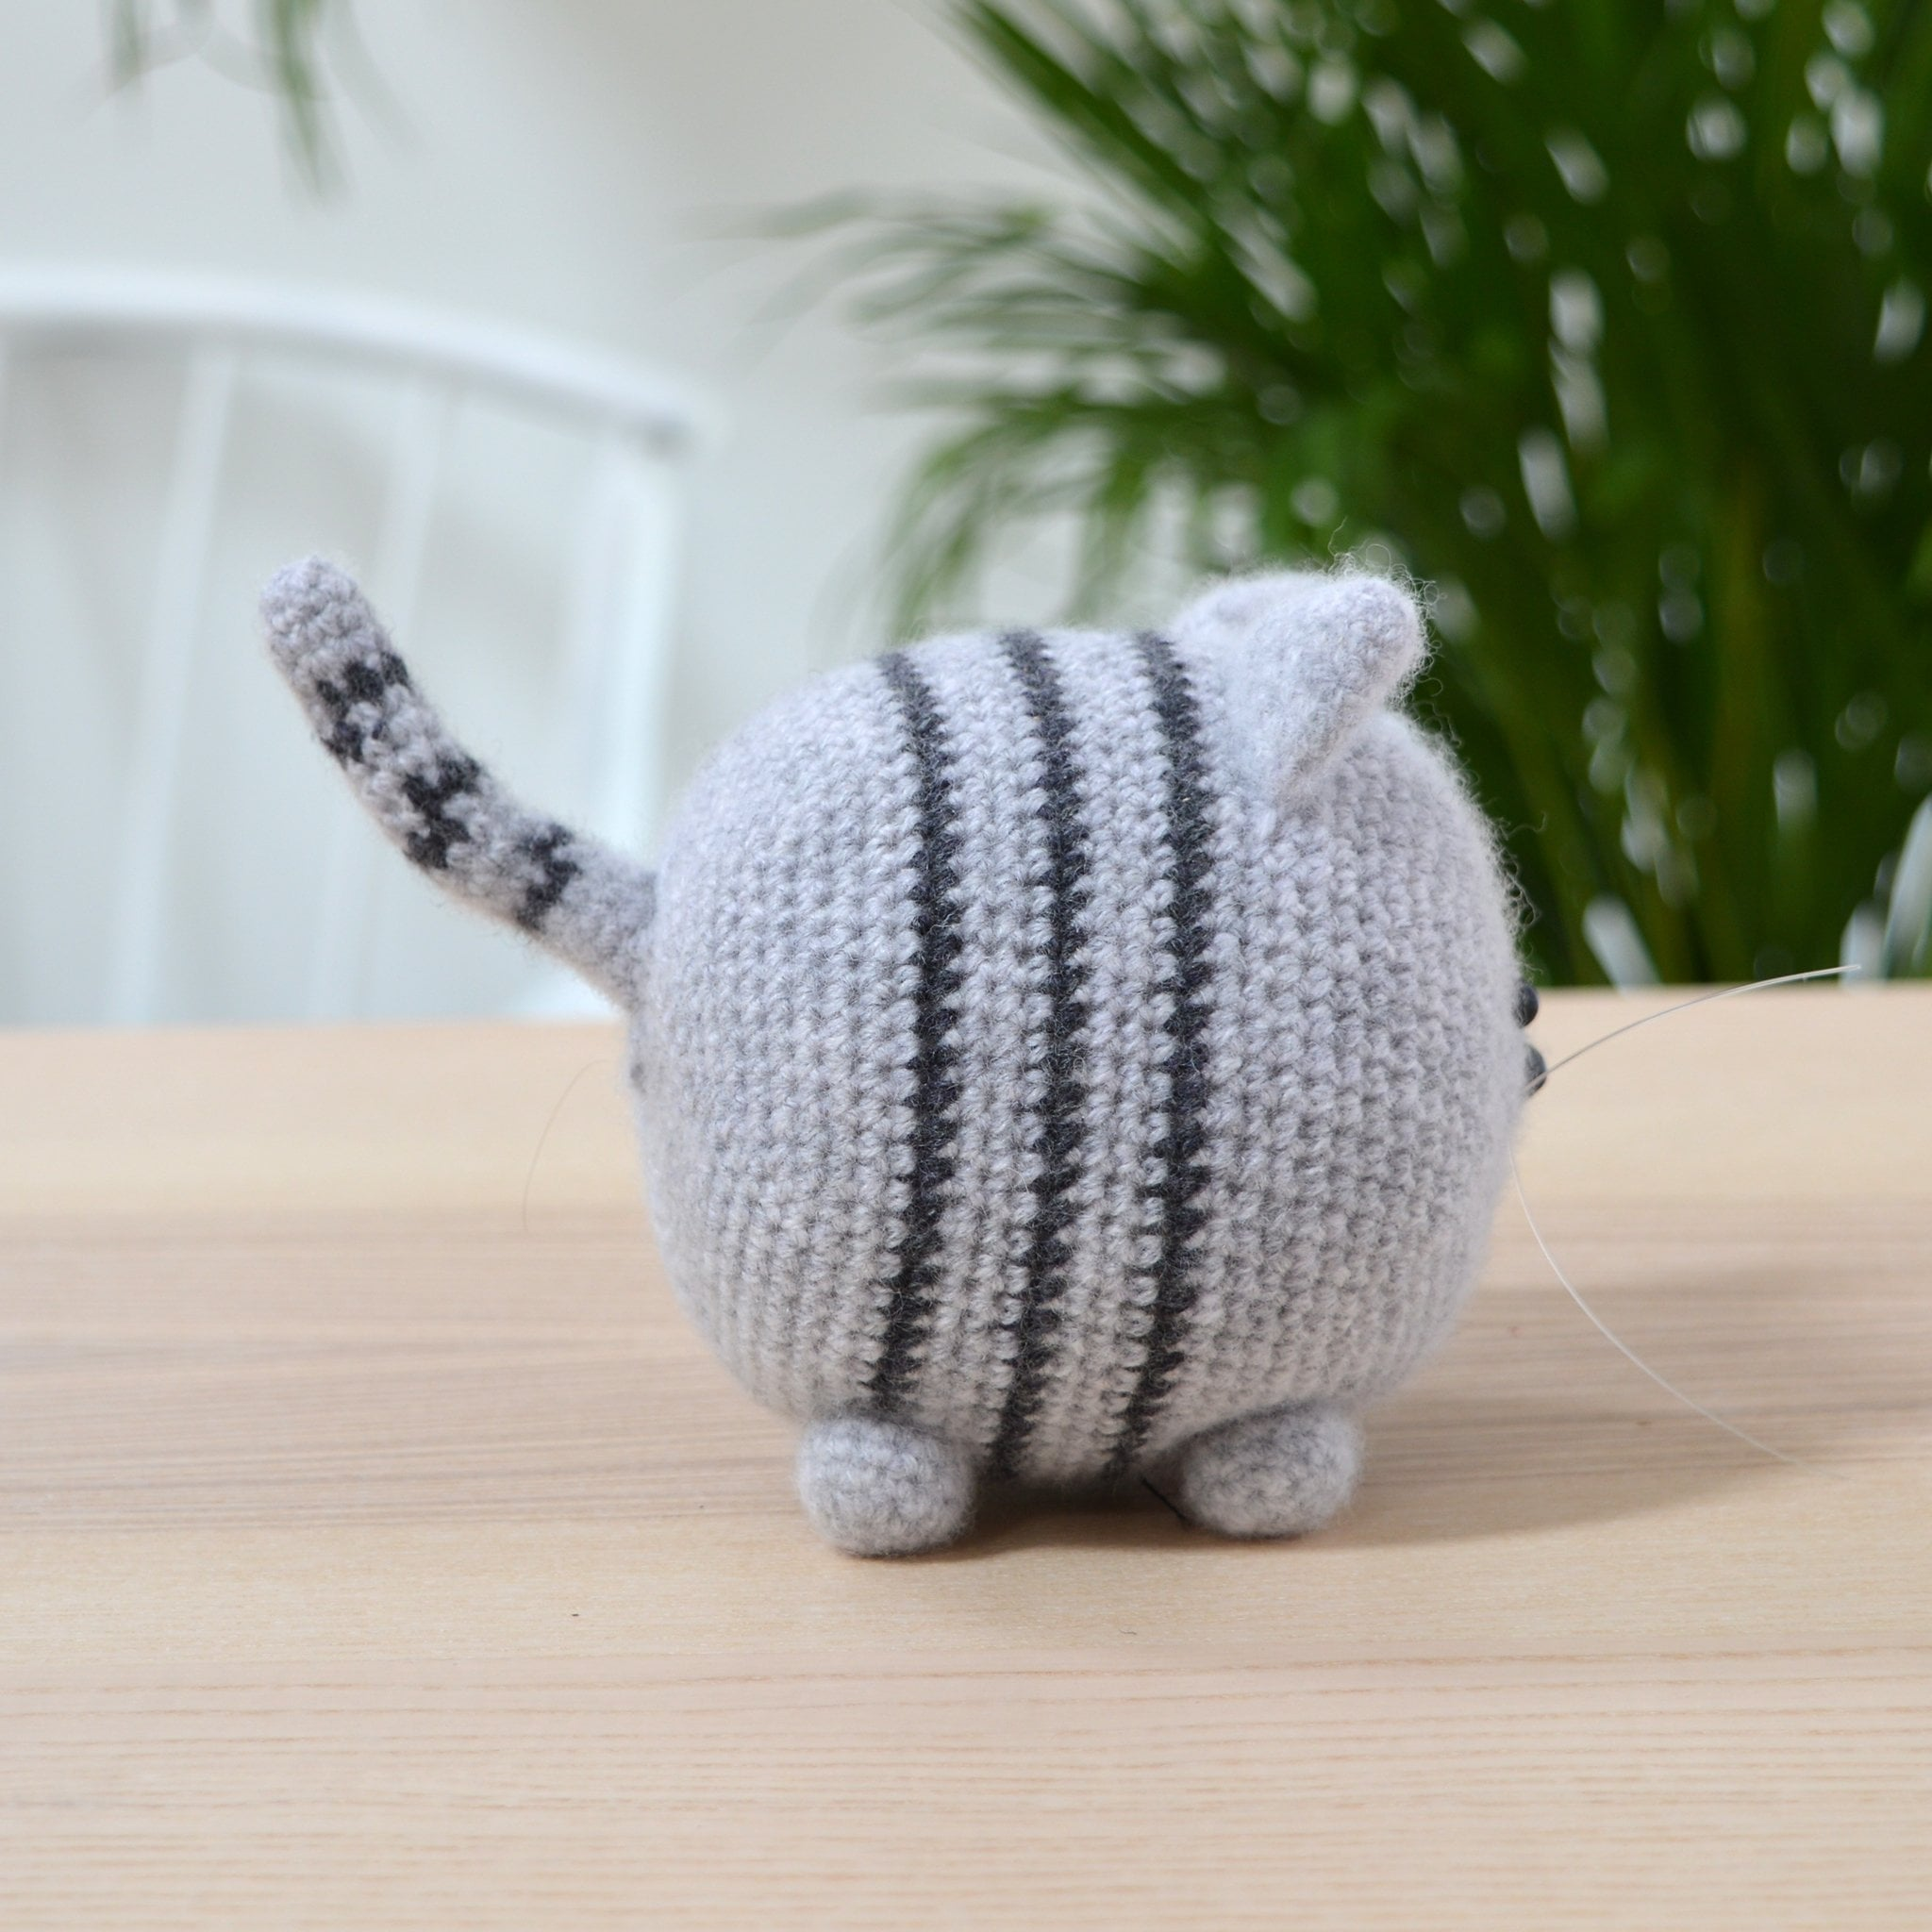 Stripey Cat Crochet Kit - Solid And Marl – Solid and Marl